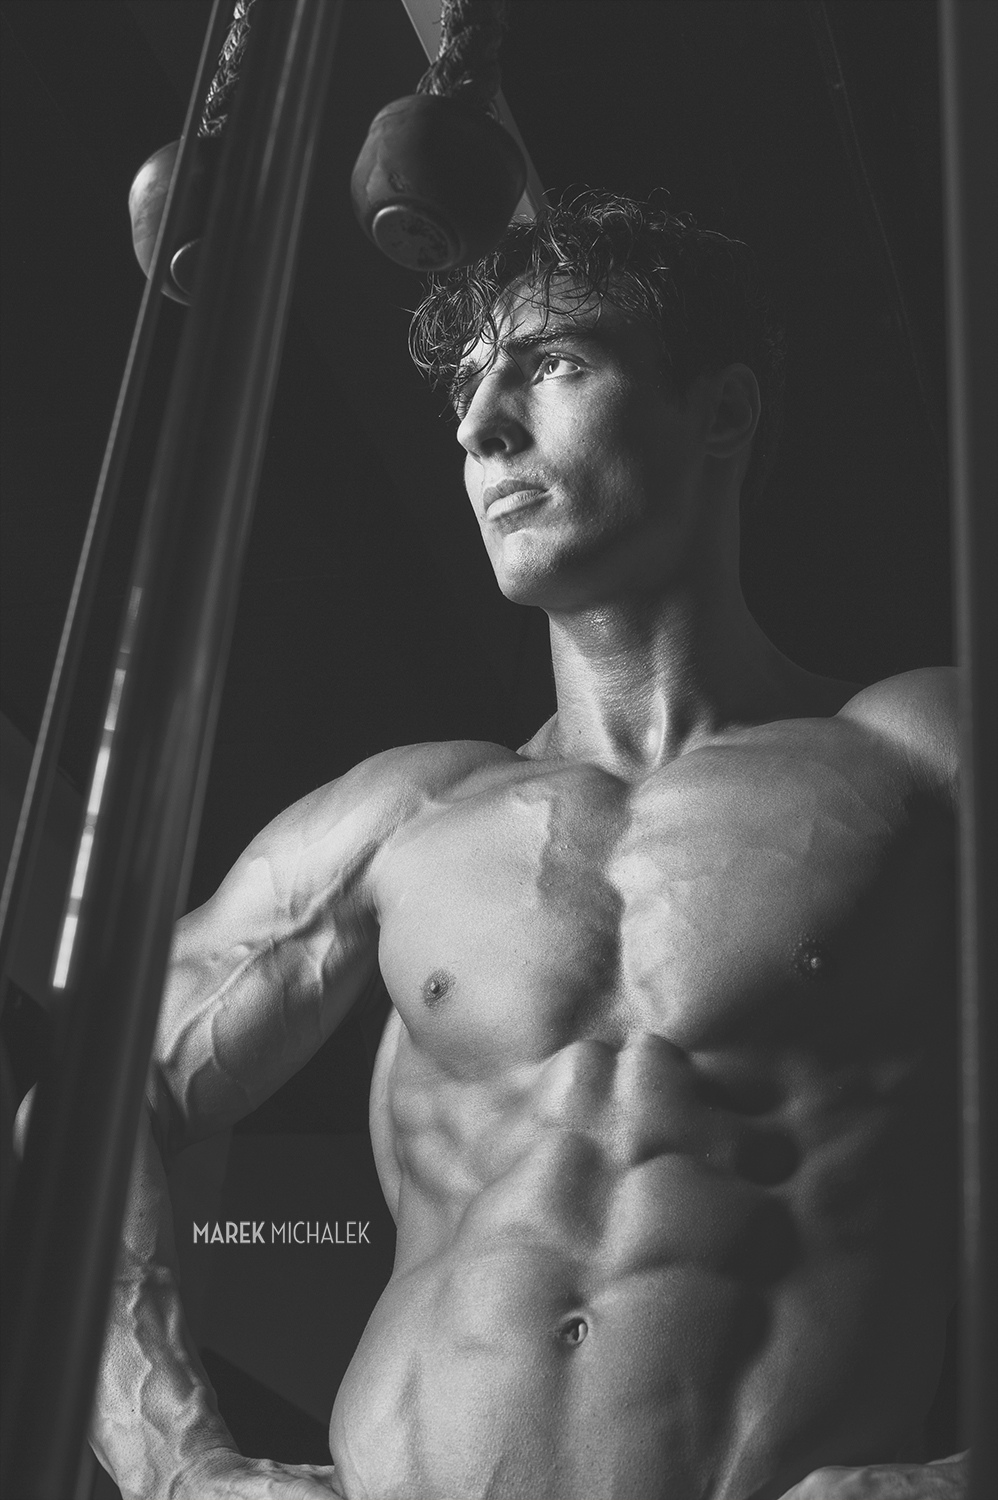 Hamilton Fitness Photographer - Marek Michalek 02.jpg